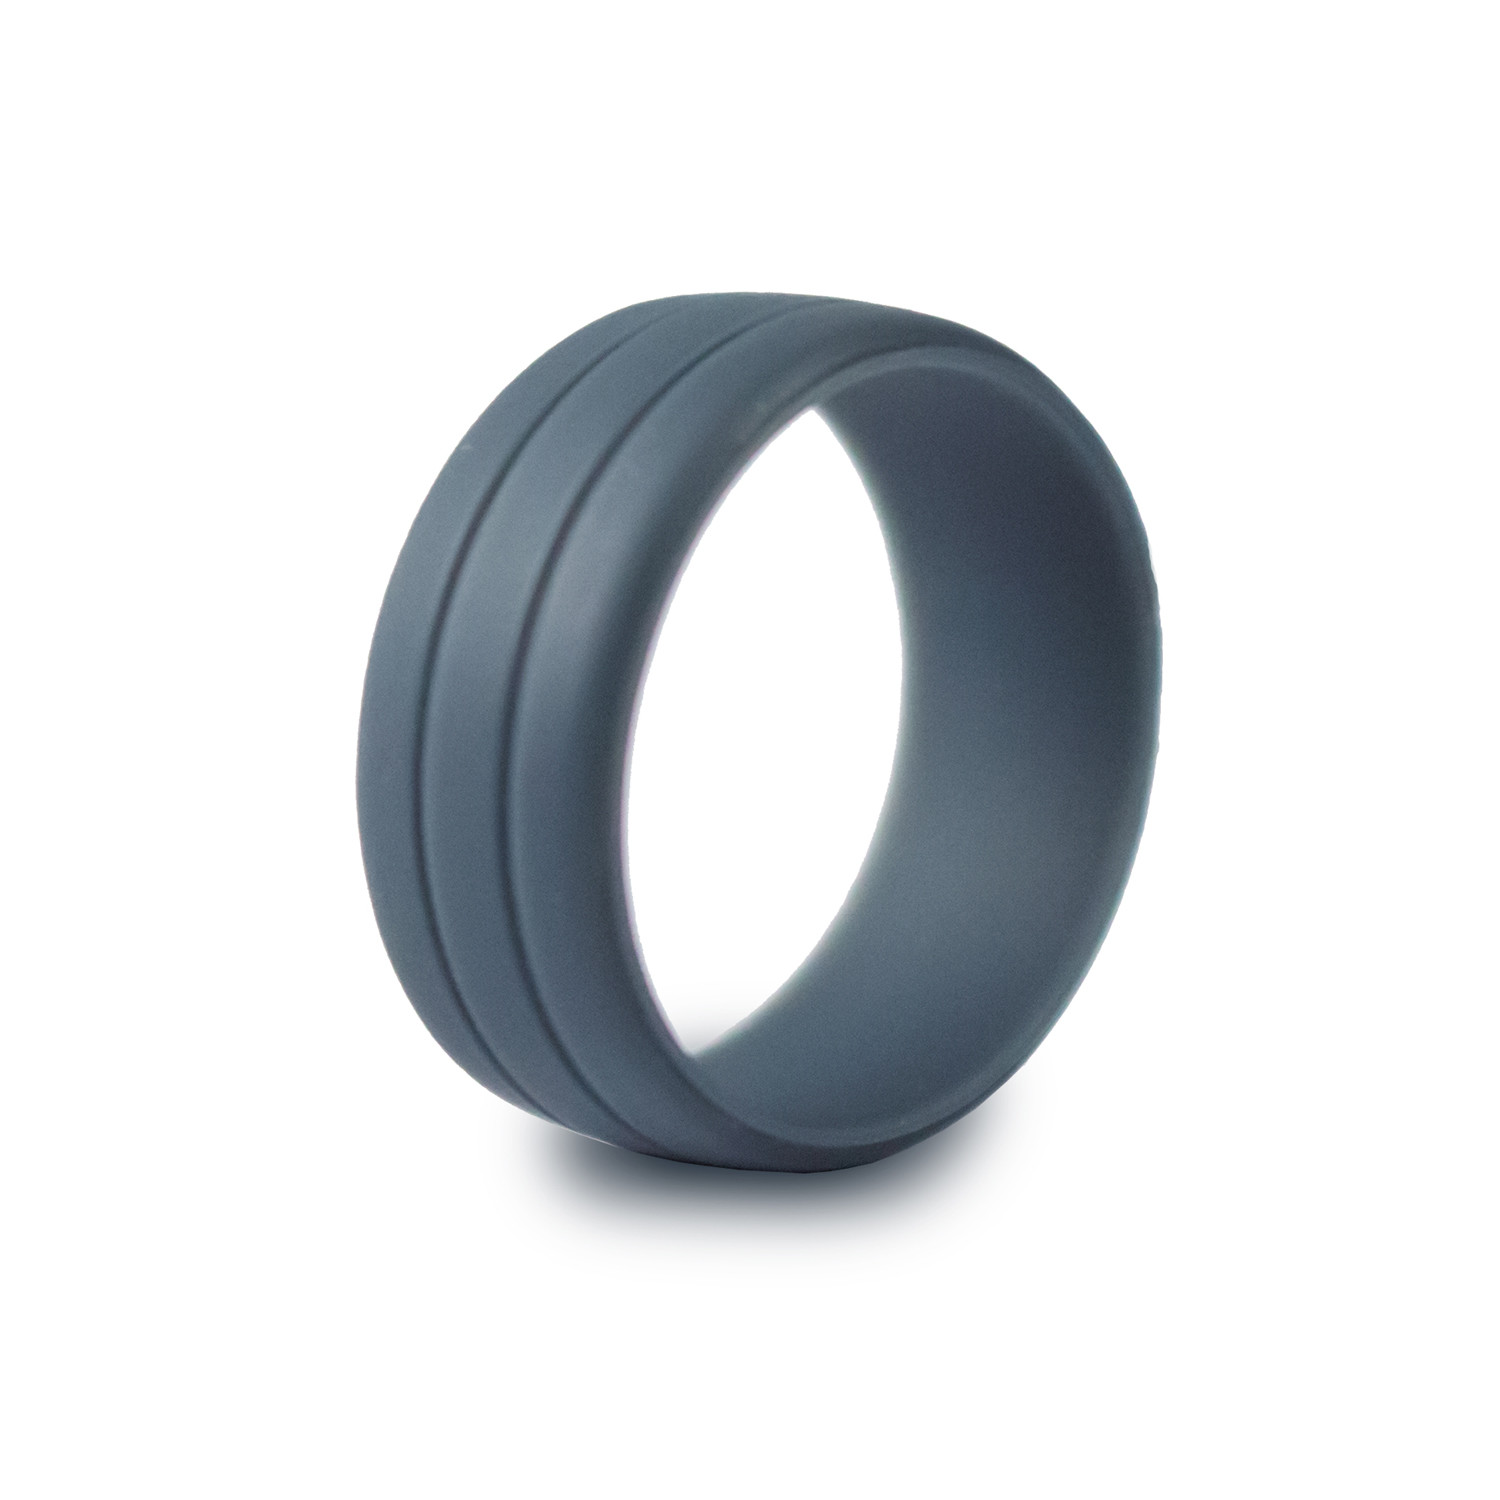 Ultralite Silicone Ring // Slate (Size 8)